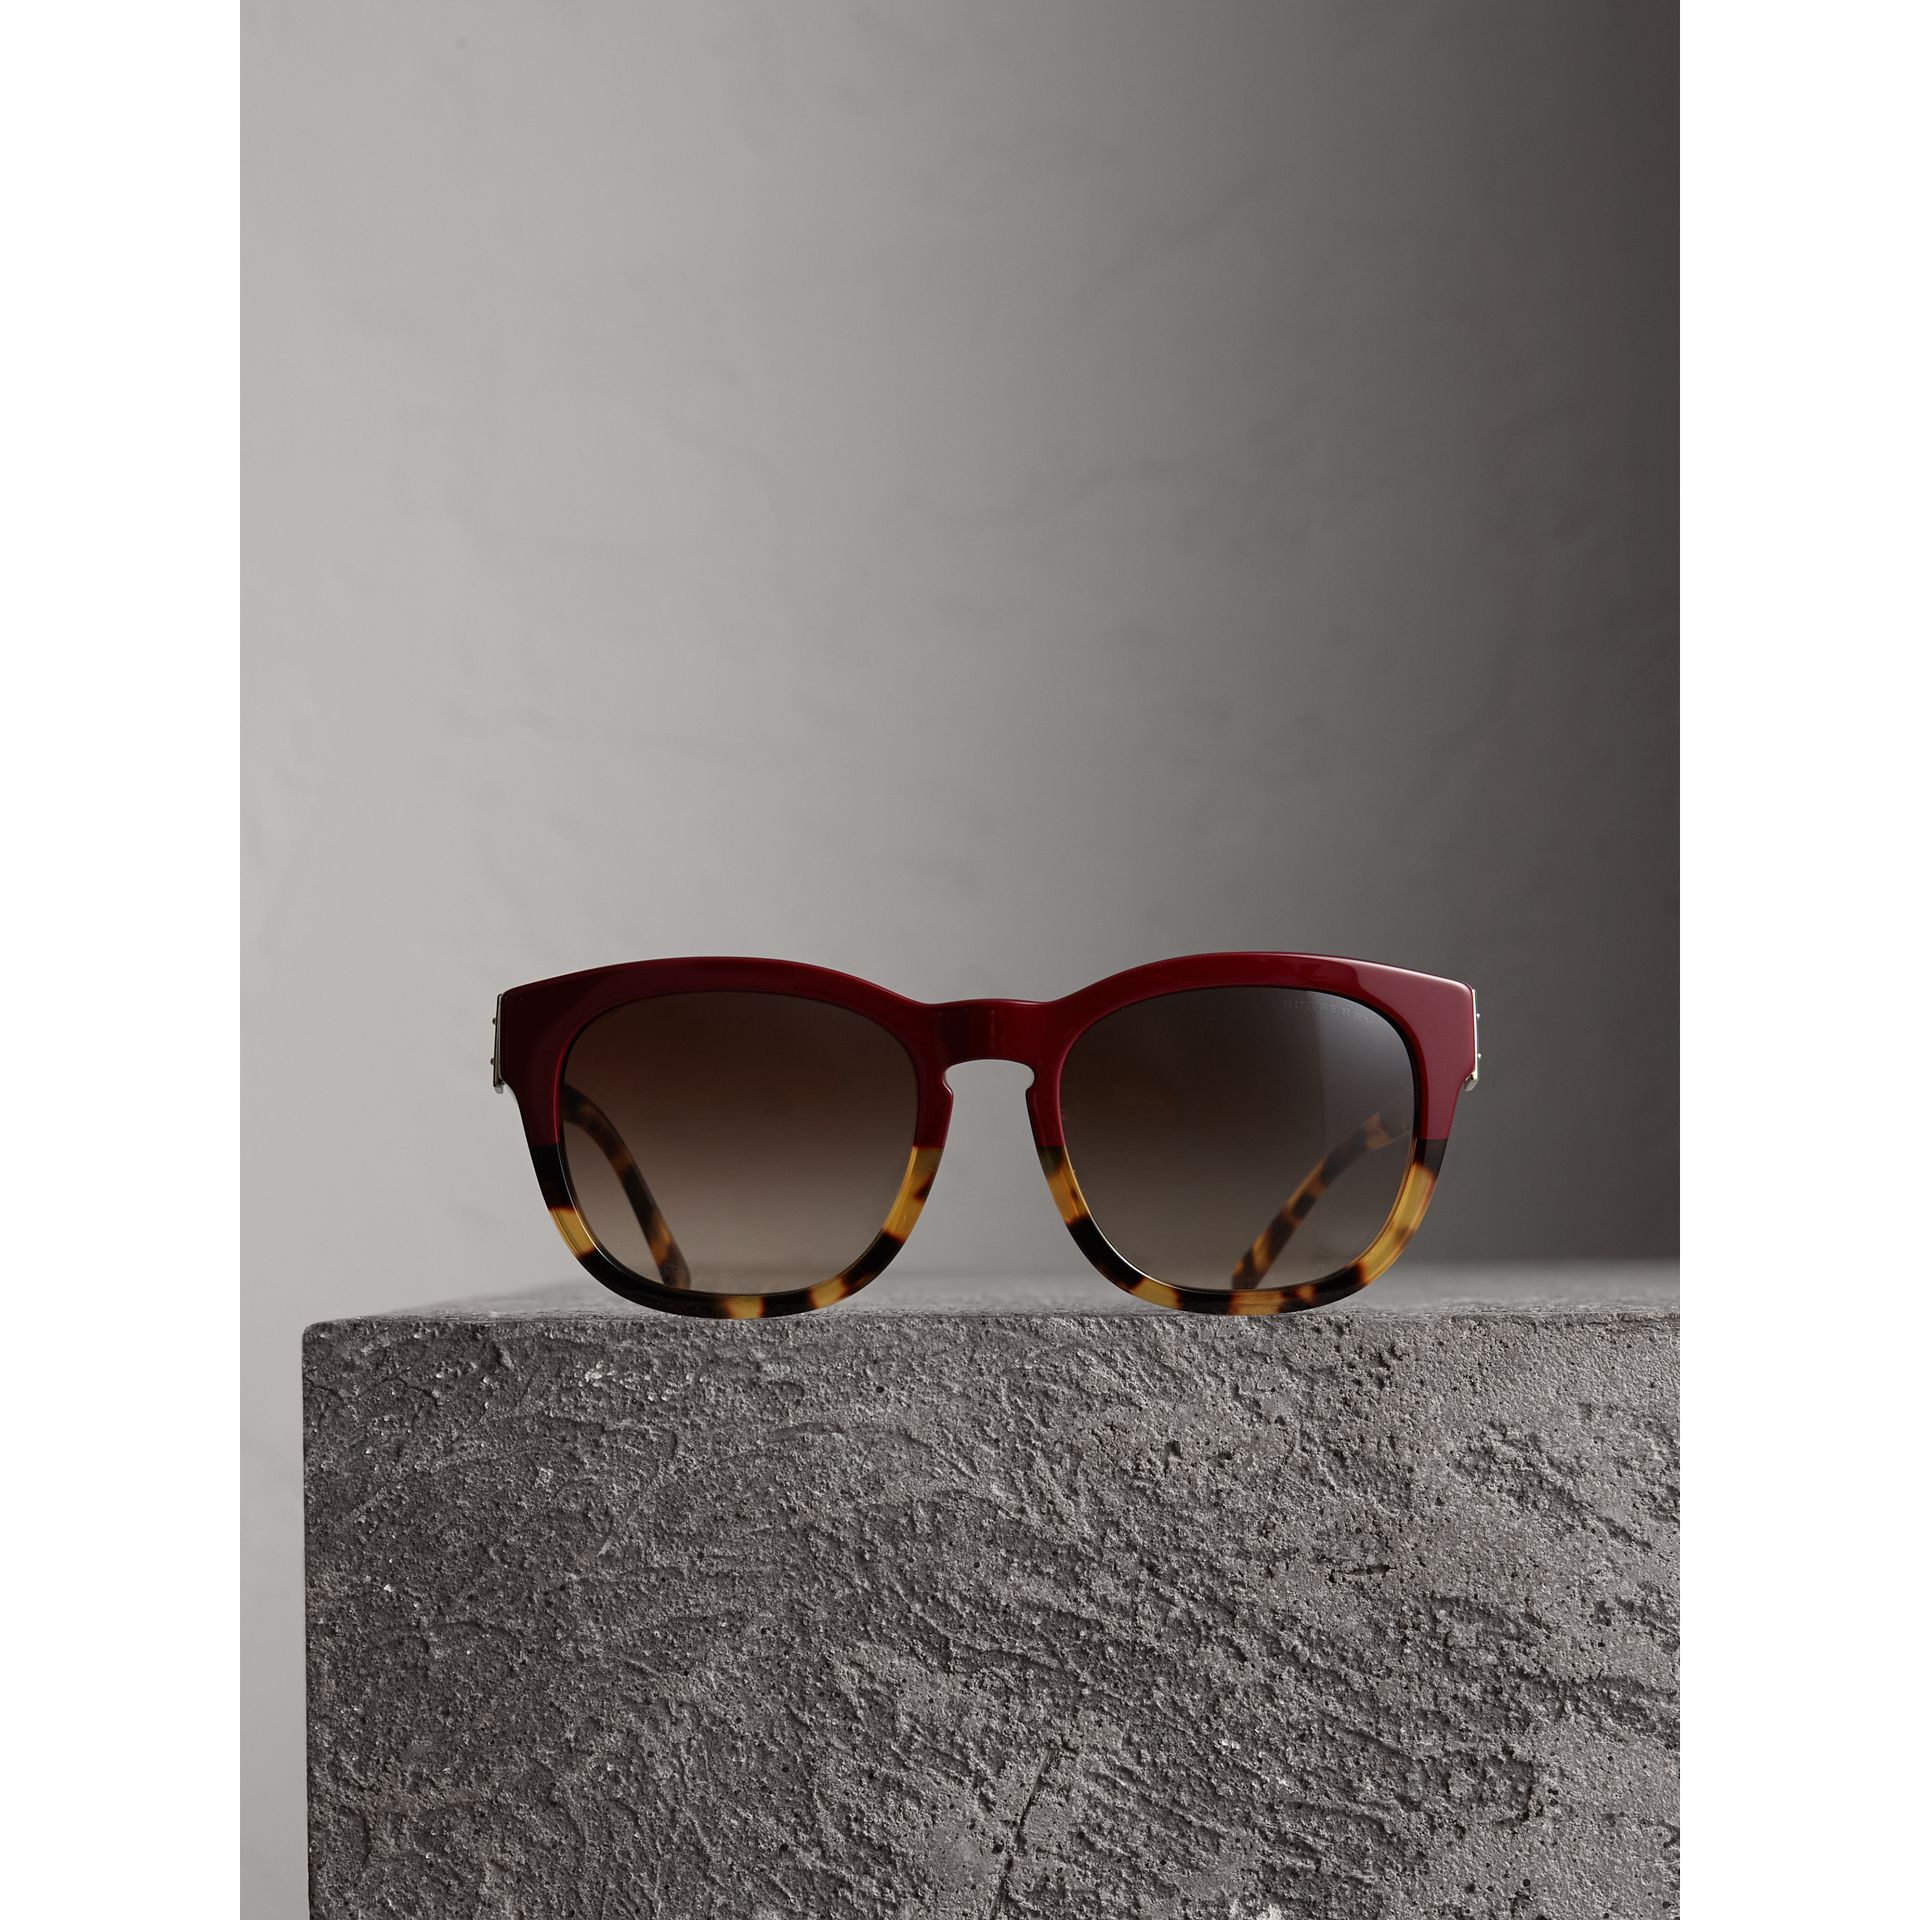 Buckle Detail Square Frame Sunglasses in Burgundy - Women | Burberry Singapore - gallery image 3